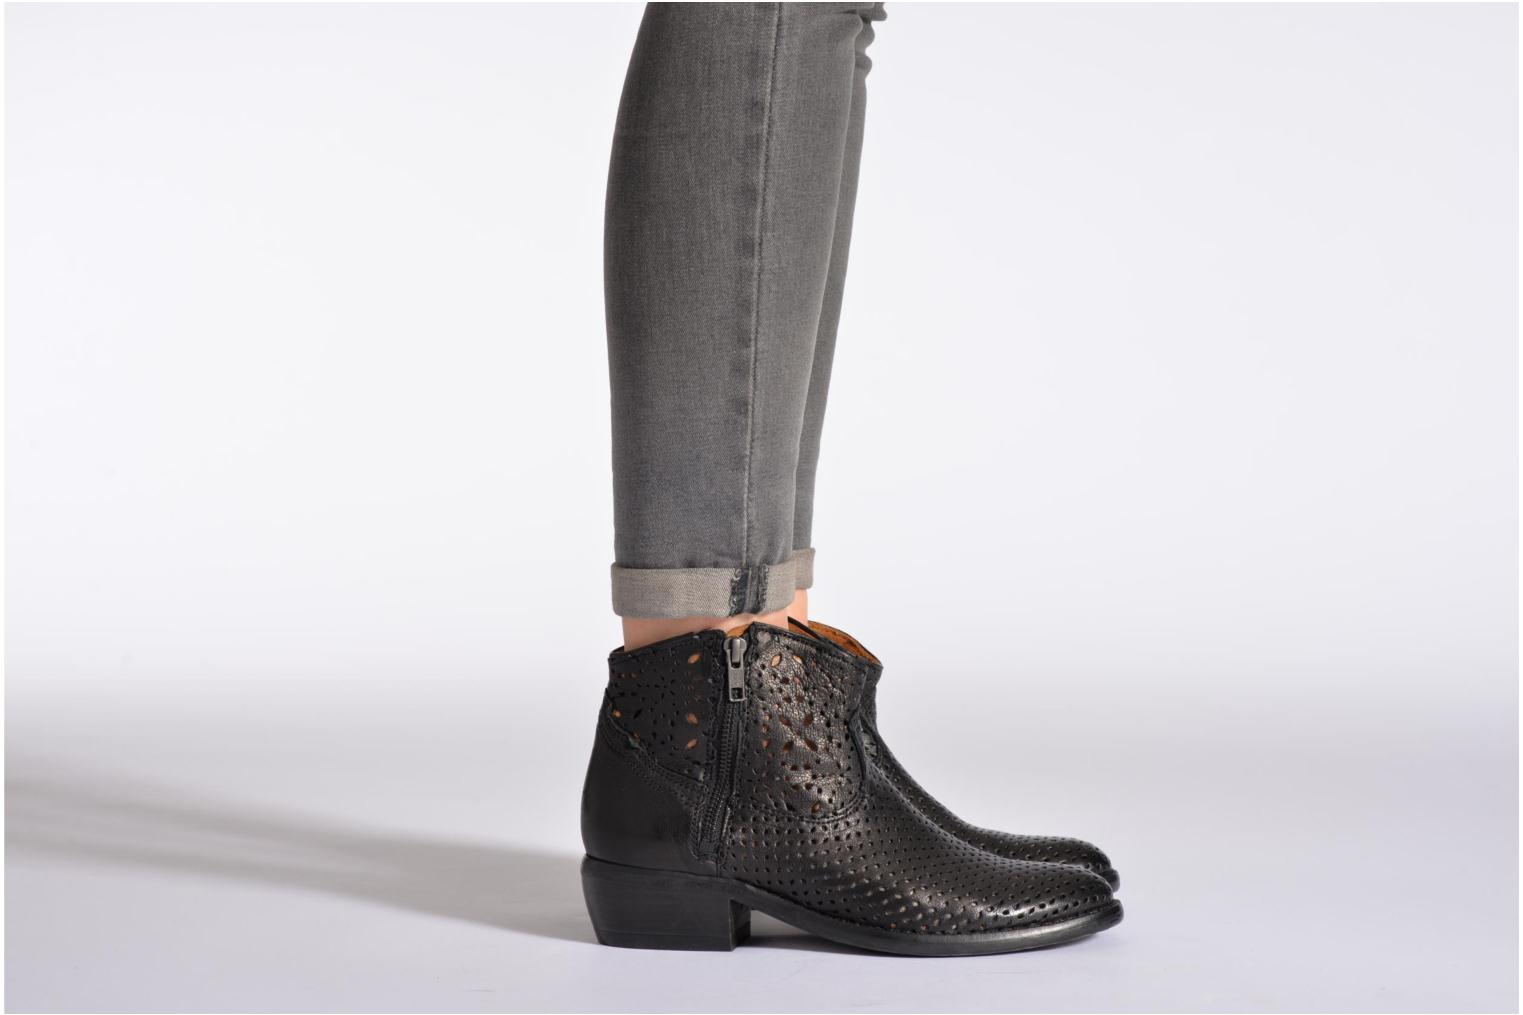 MEGAN ZIP BOOT PERF. LEATHER White leather perf